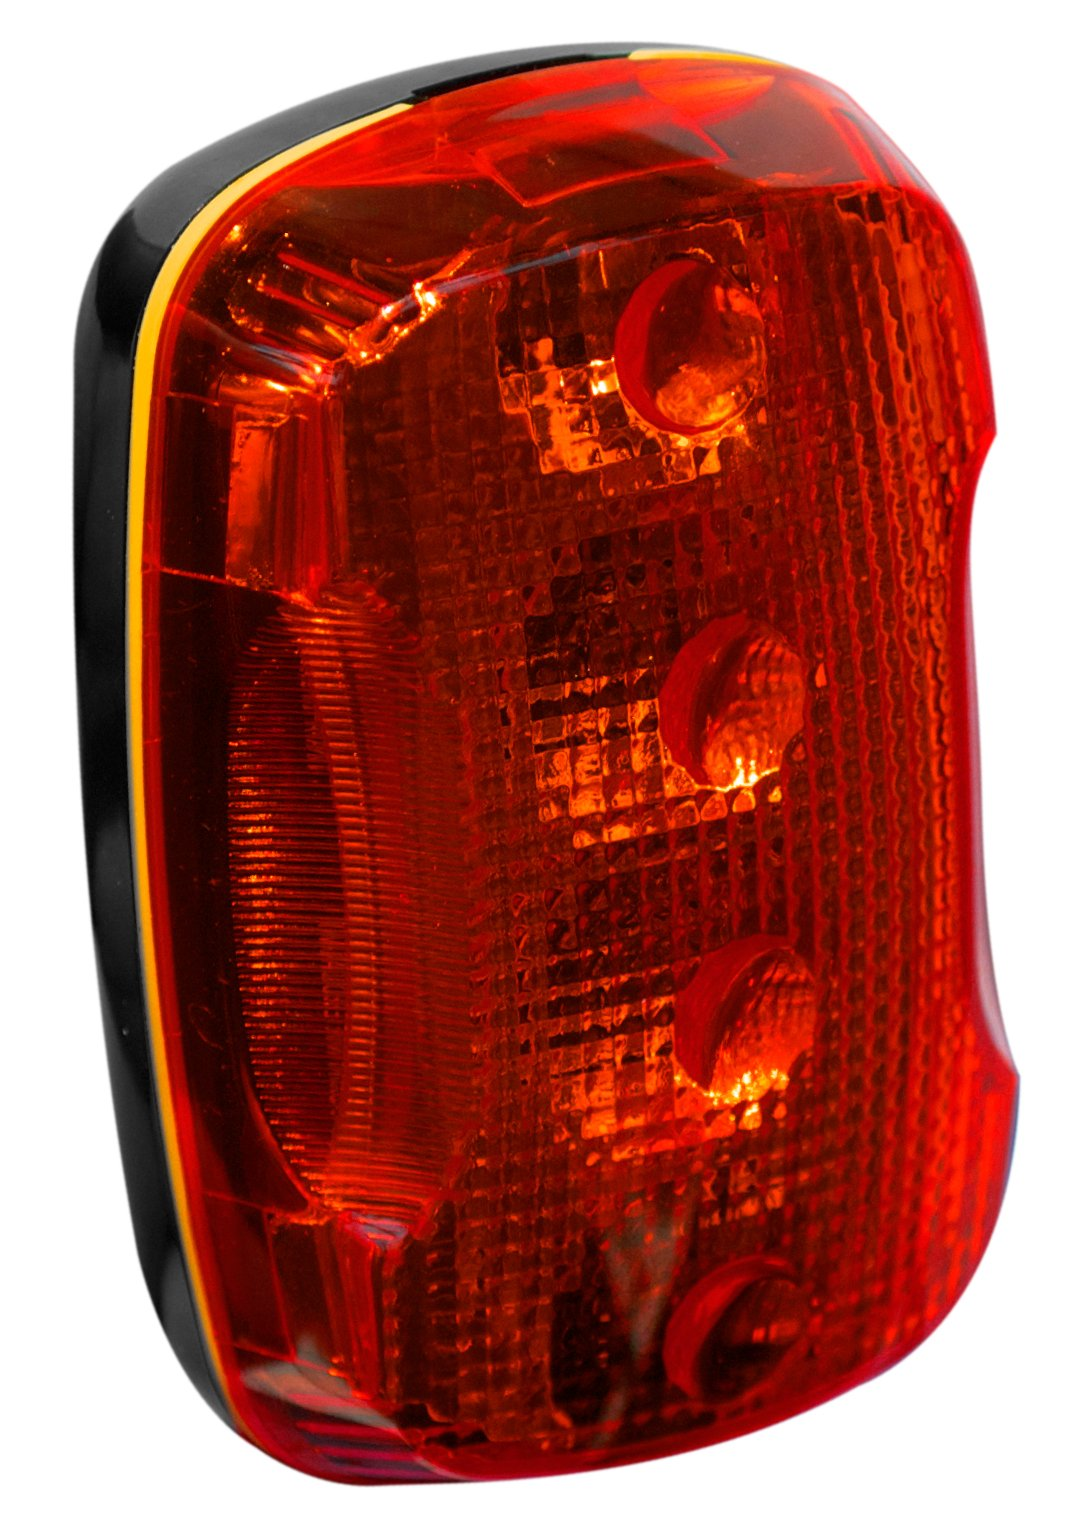 FoxFire 6001654 Personal Safety Weather Resistant Light, 4 LEDs, 2-115/128'' Length x 1-51/64'' Width x 1-5/32'' Thick, Red by Fox Fire